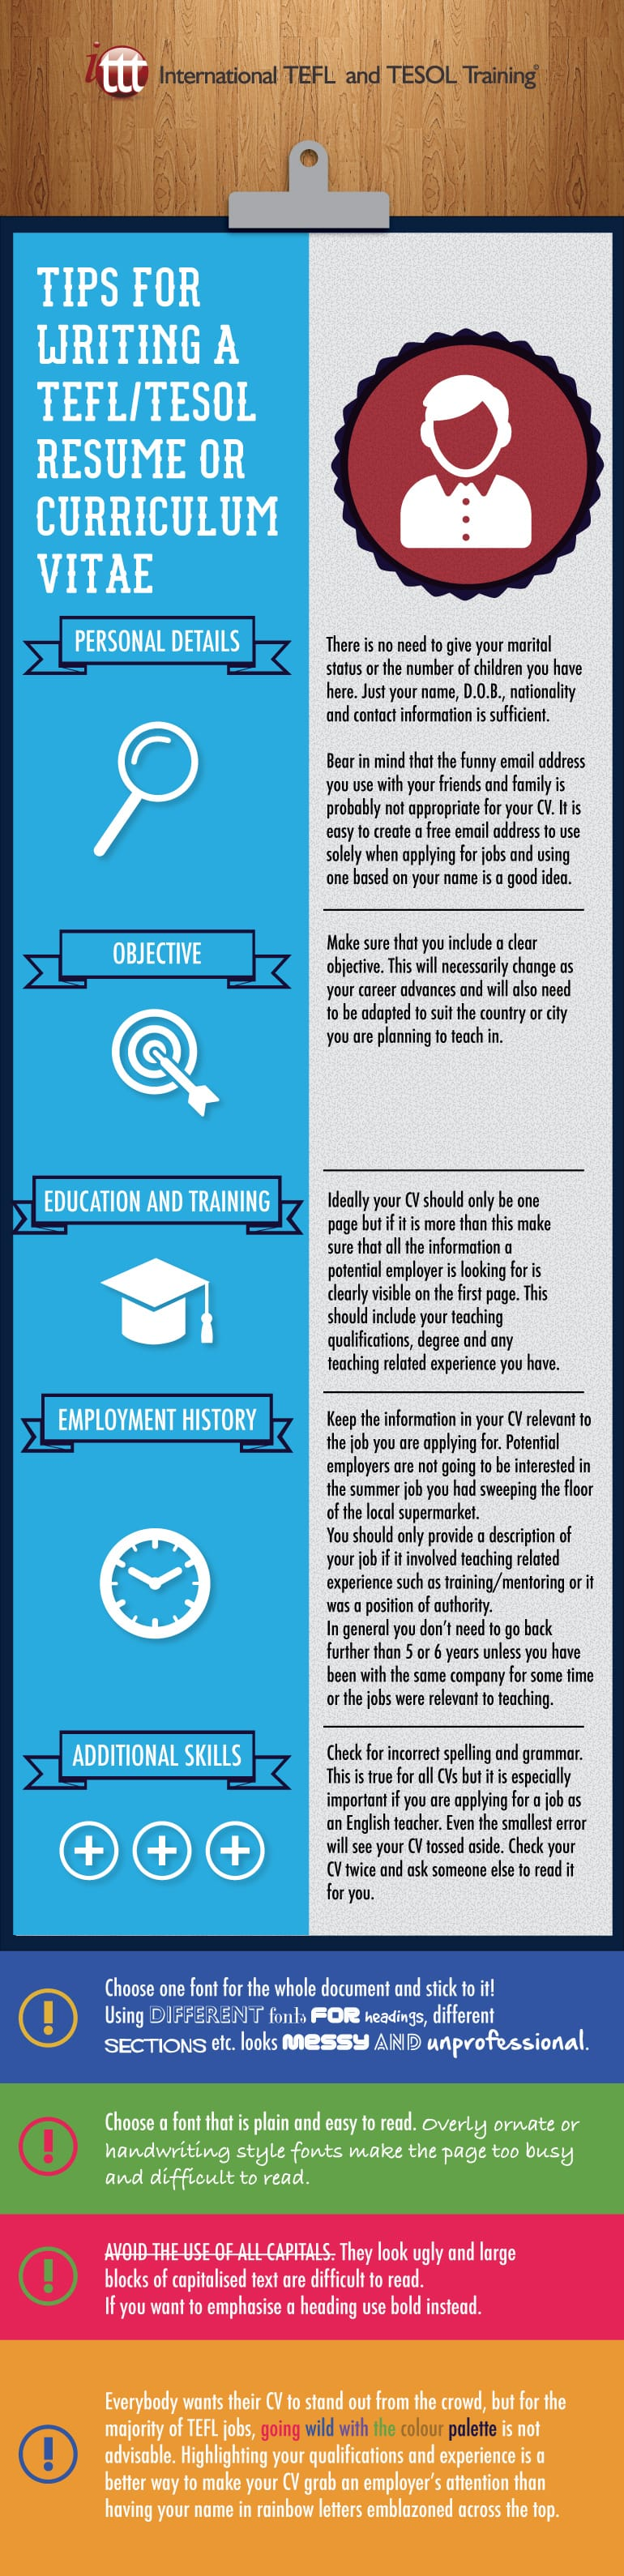 Infographic Tips for writing a TEFL/TESOL Resume/ Curriculum Vitae